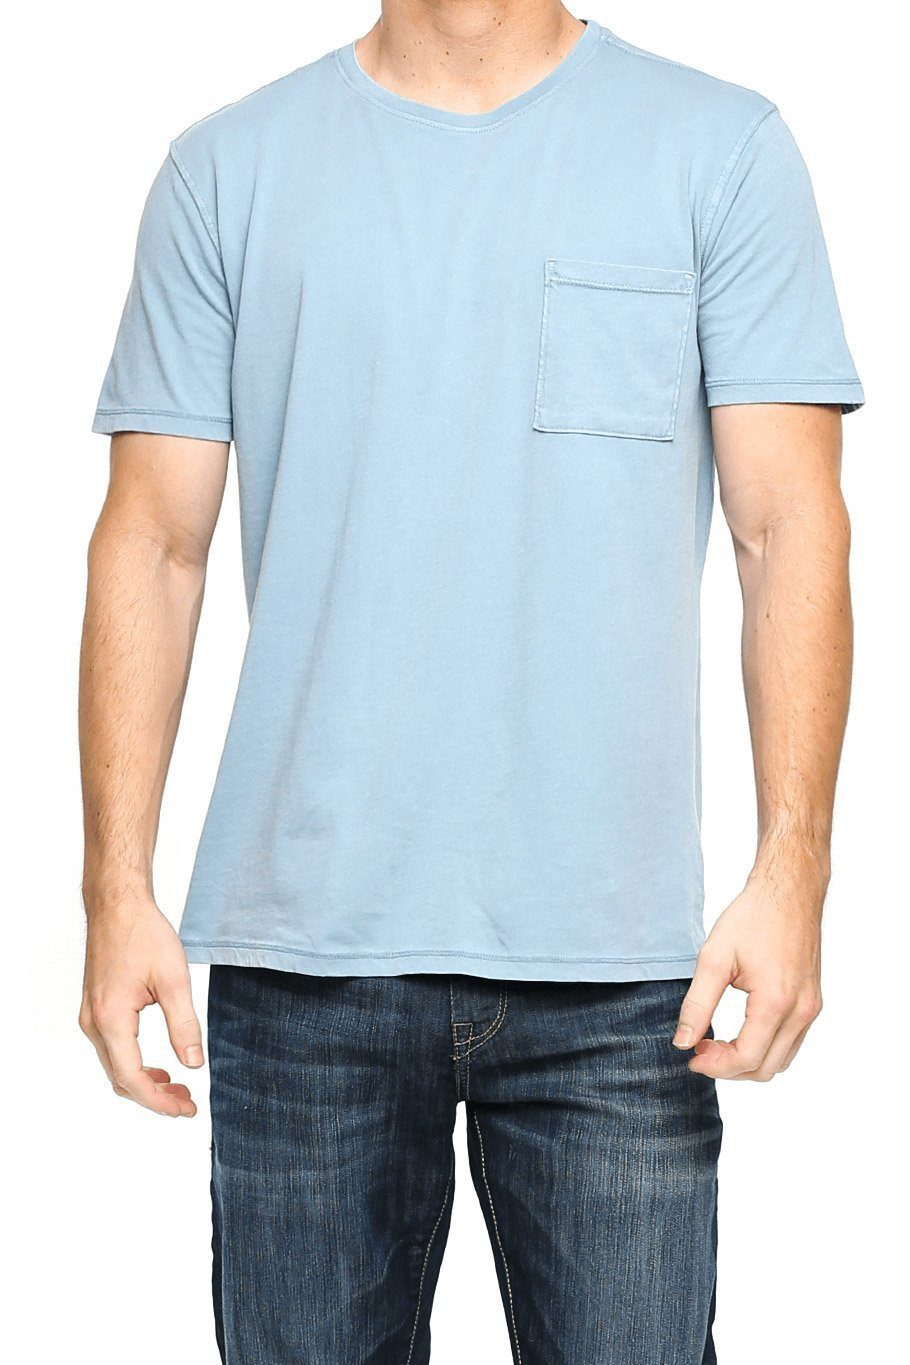 Short Sleeve Pocket Crew Tee - Stone Blue - Shore